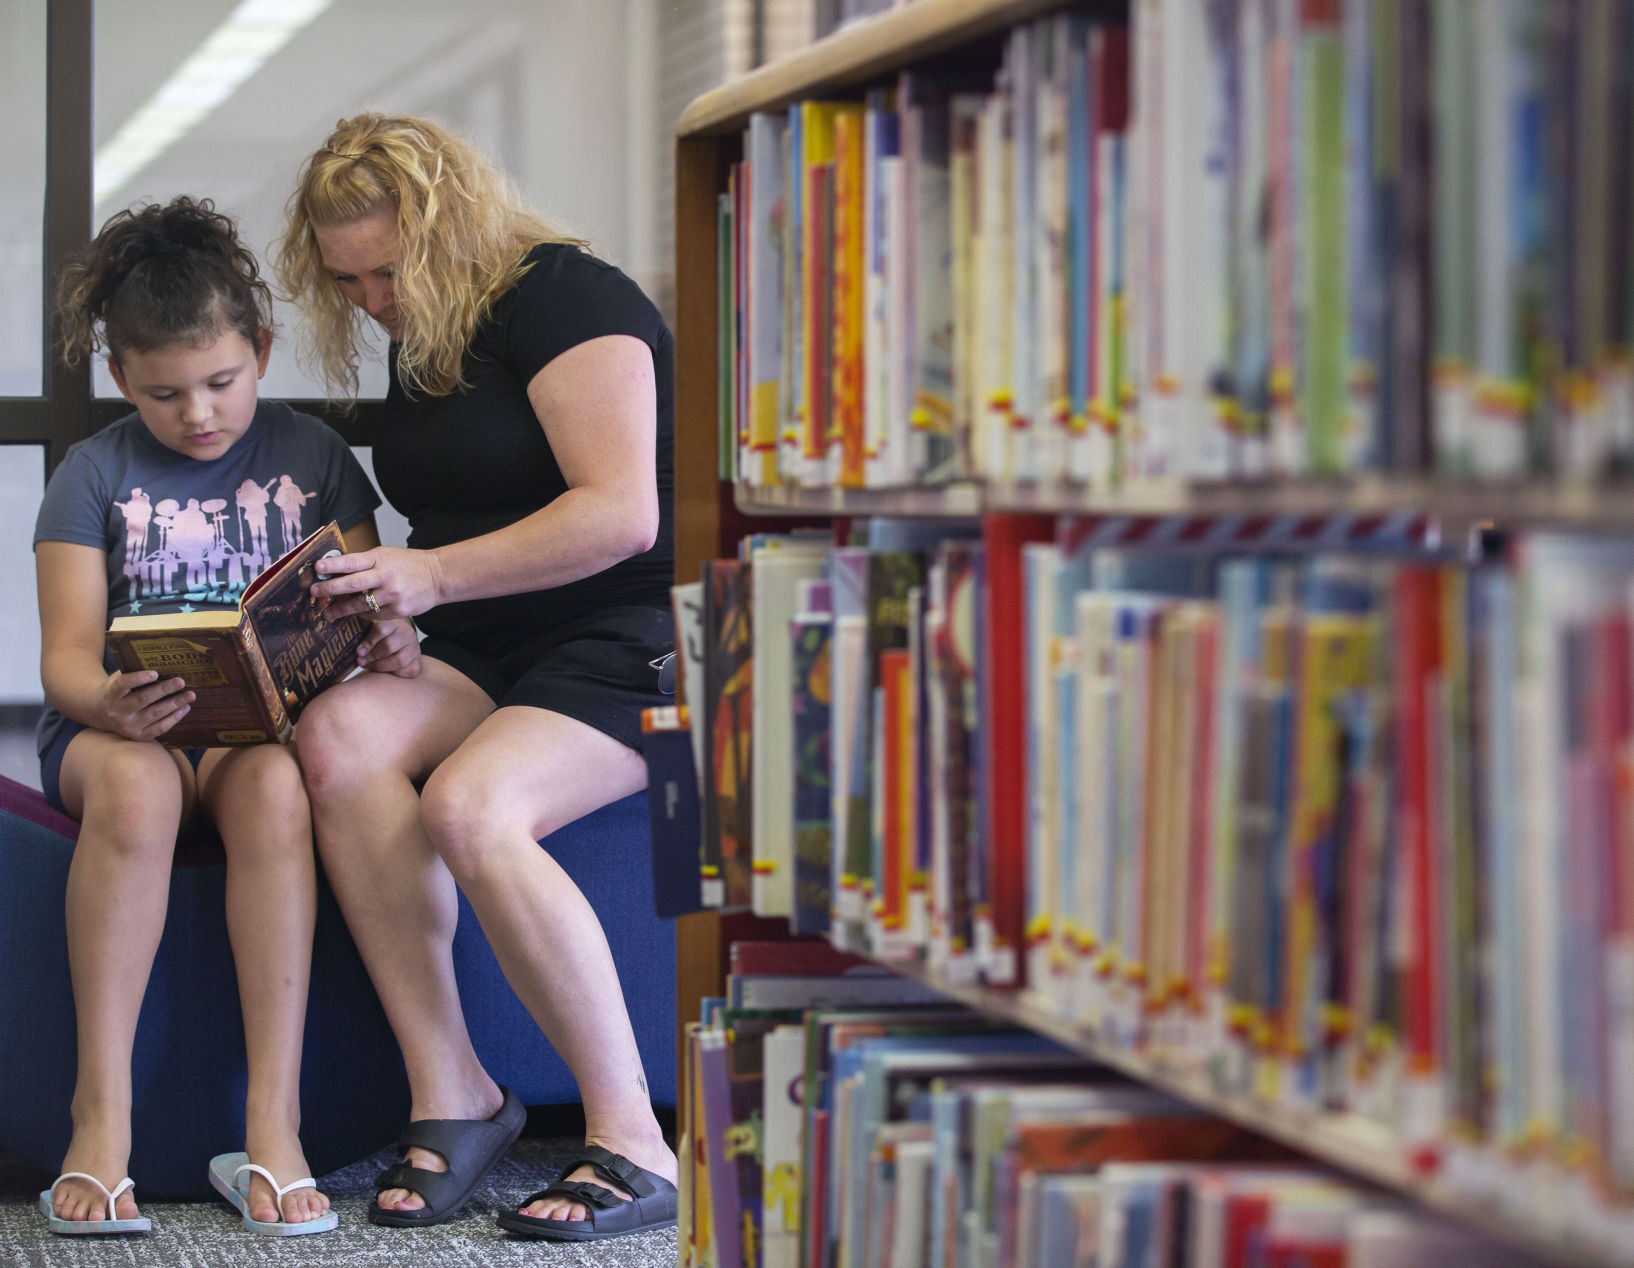 As campuses prepare to open, some families in Galveston County continue to home school